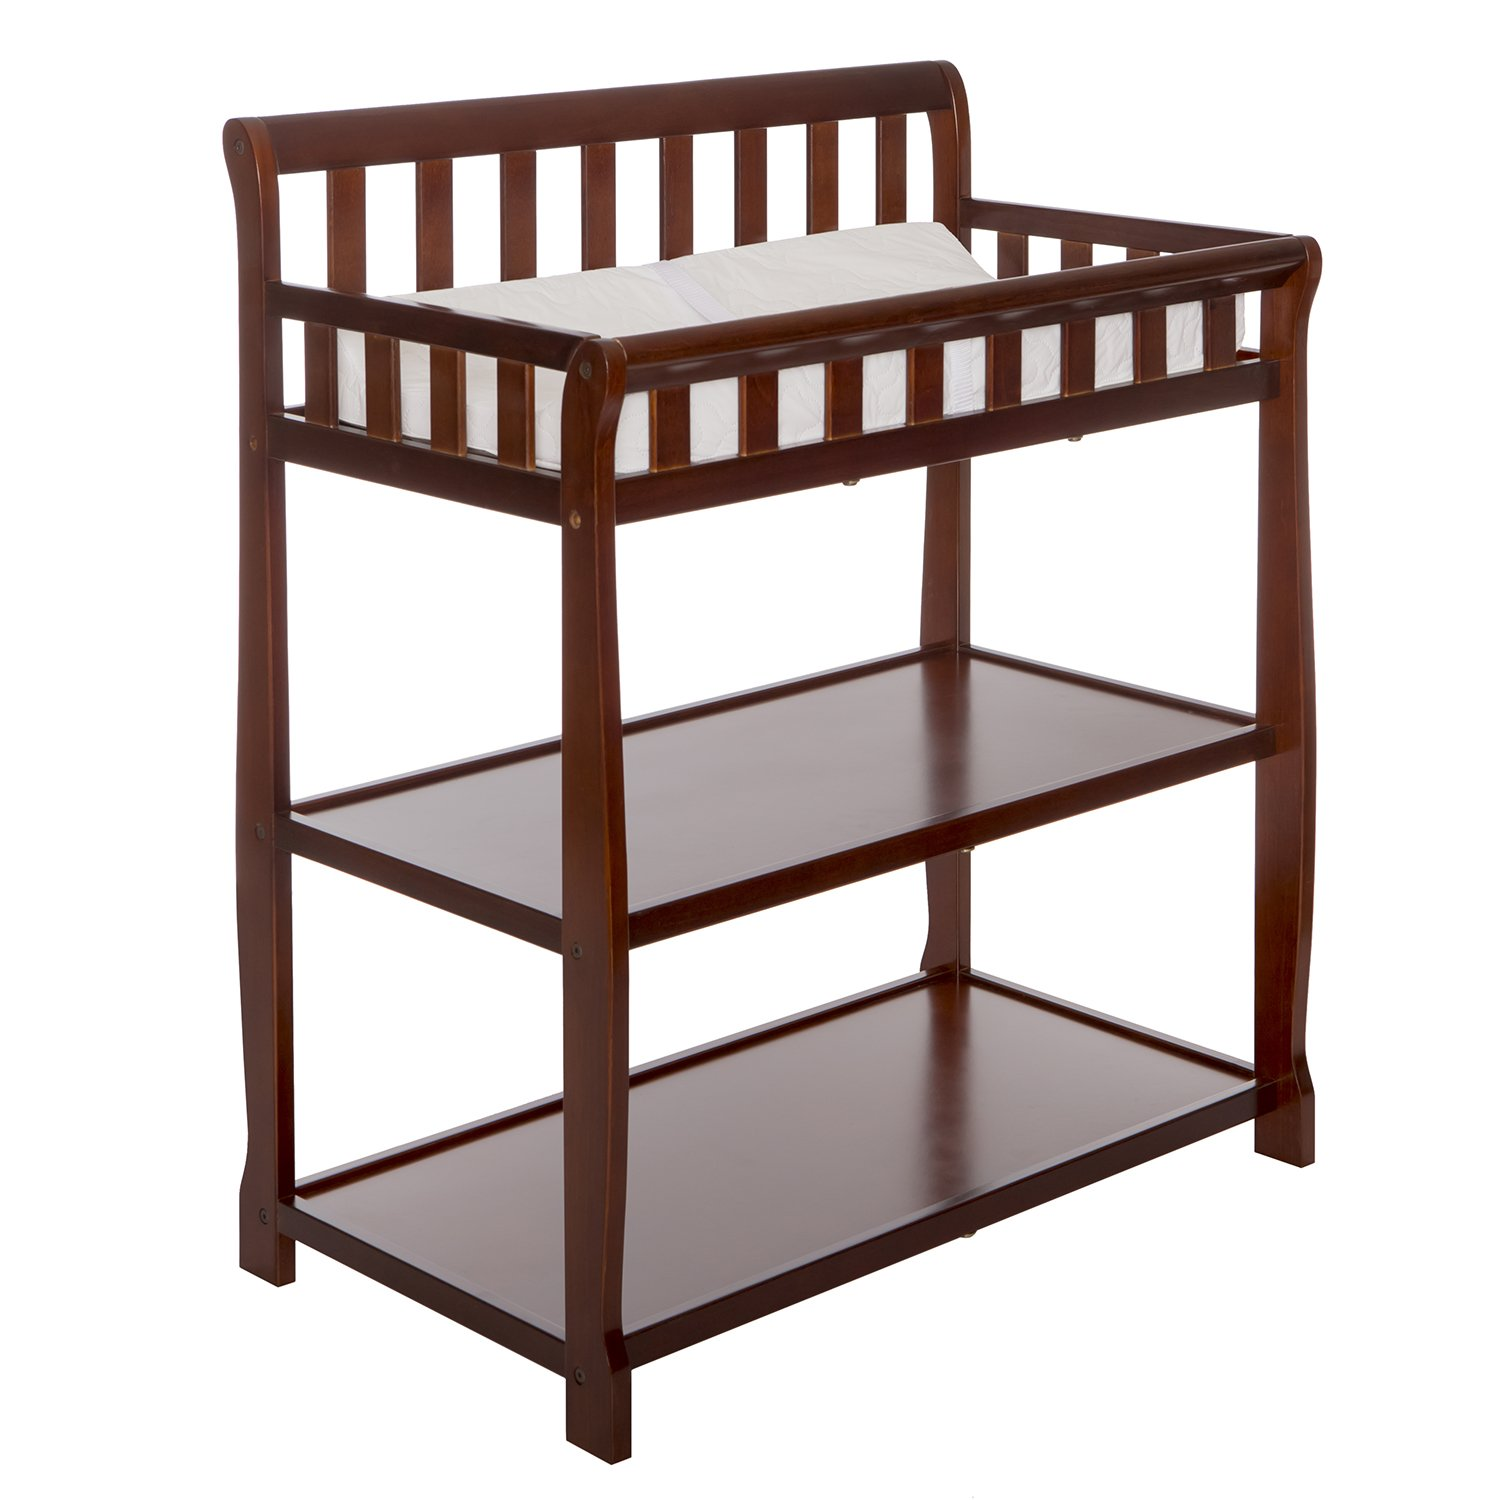 Dream On Me Ashton Changing Table by Dream On Me